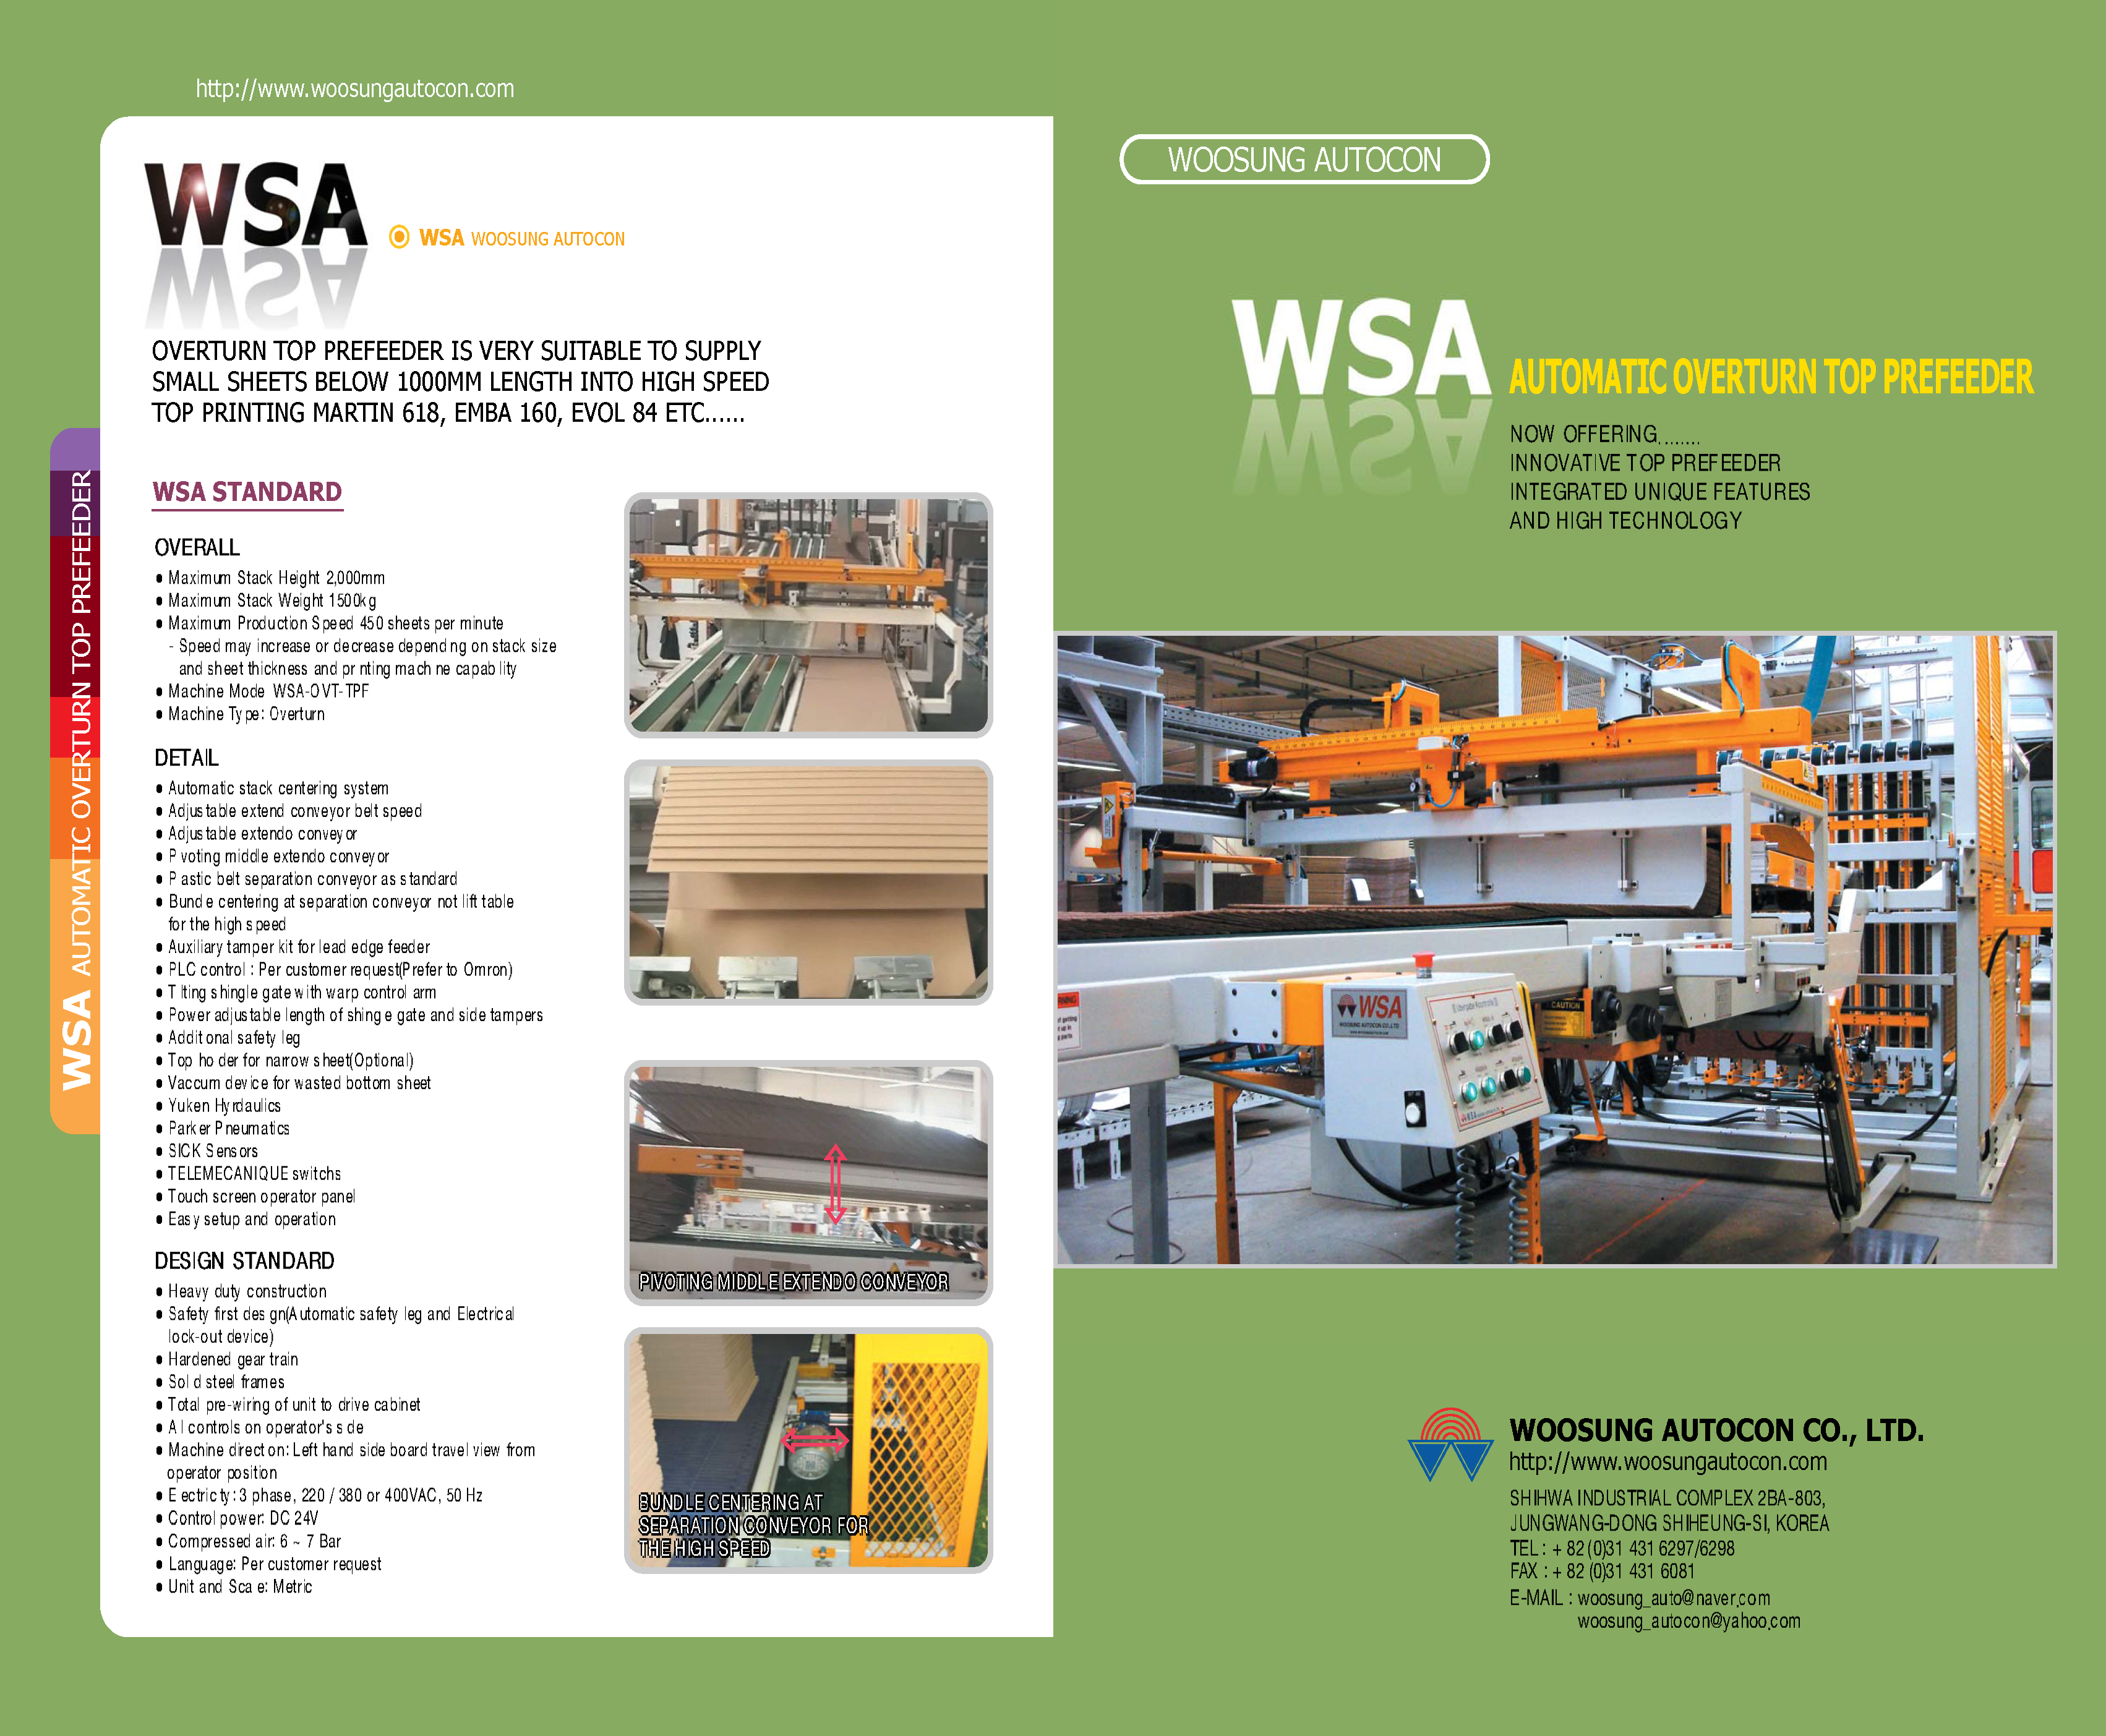 Learn more about the WSA Automatic Overturn Top Prefeeder and Prefeeder with Dual Inverter in the WSA Brochure.